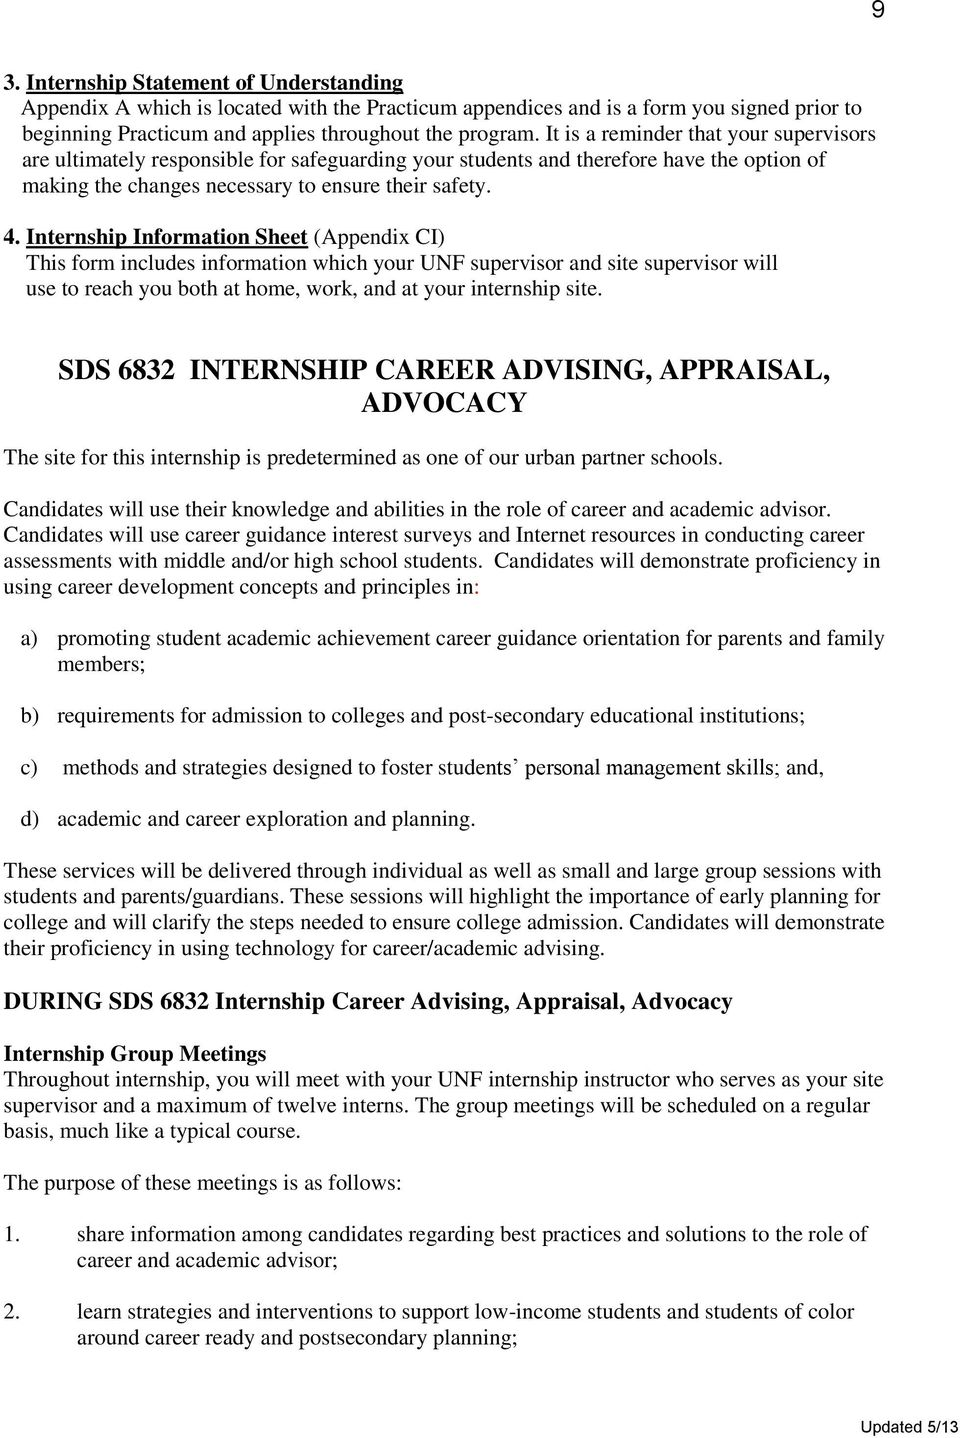 Internship Information Sheet (Appendix CI) This form includes information which your UNF supervisor and site supervisor will use to reach you both at home, work, and at your internship site.